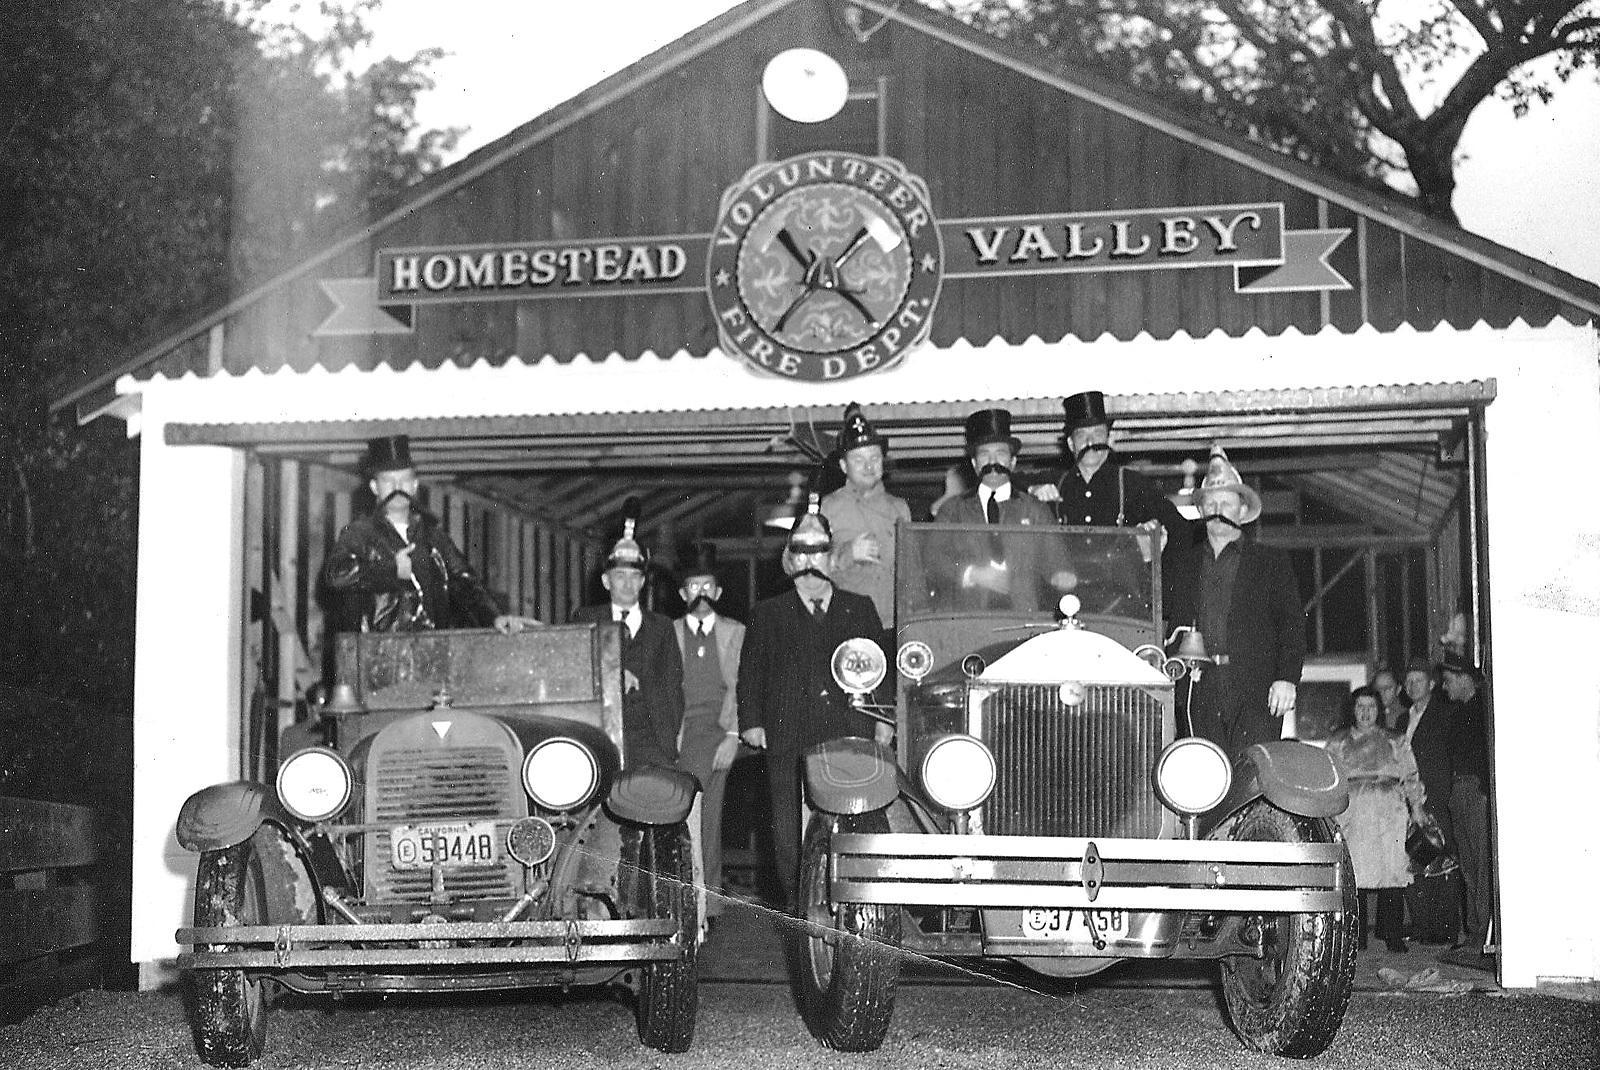 Homestead Valley Volunteer Fire Dept. New Year's Eve Celebration, 12-31-1949. > click to enlarge